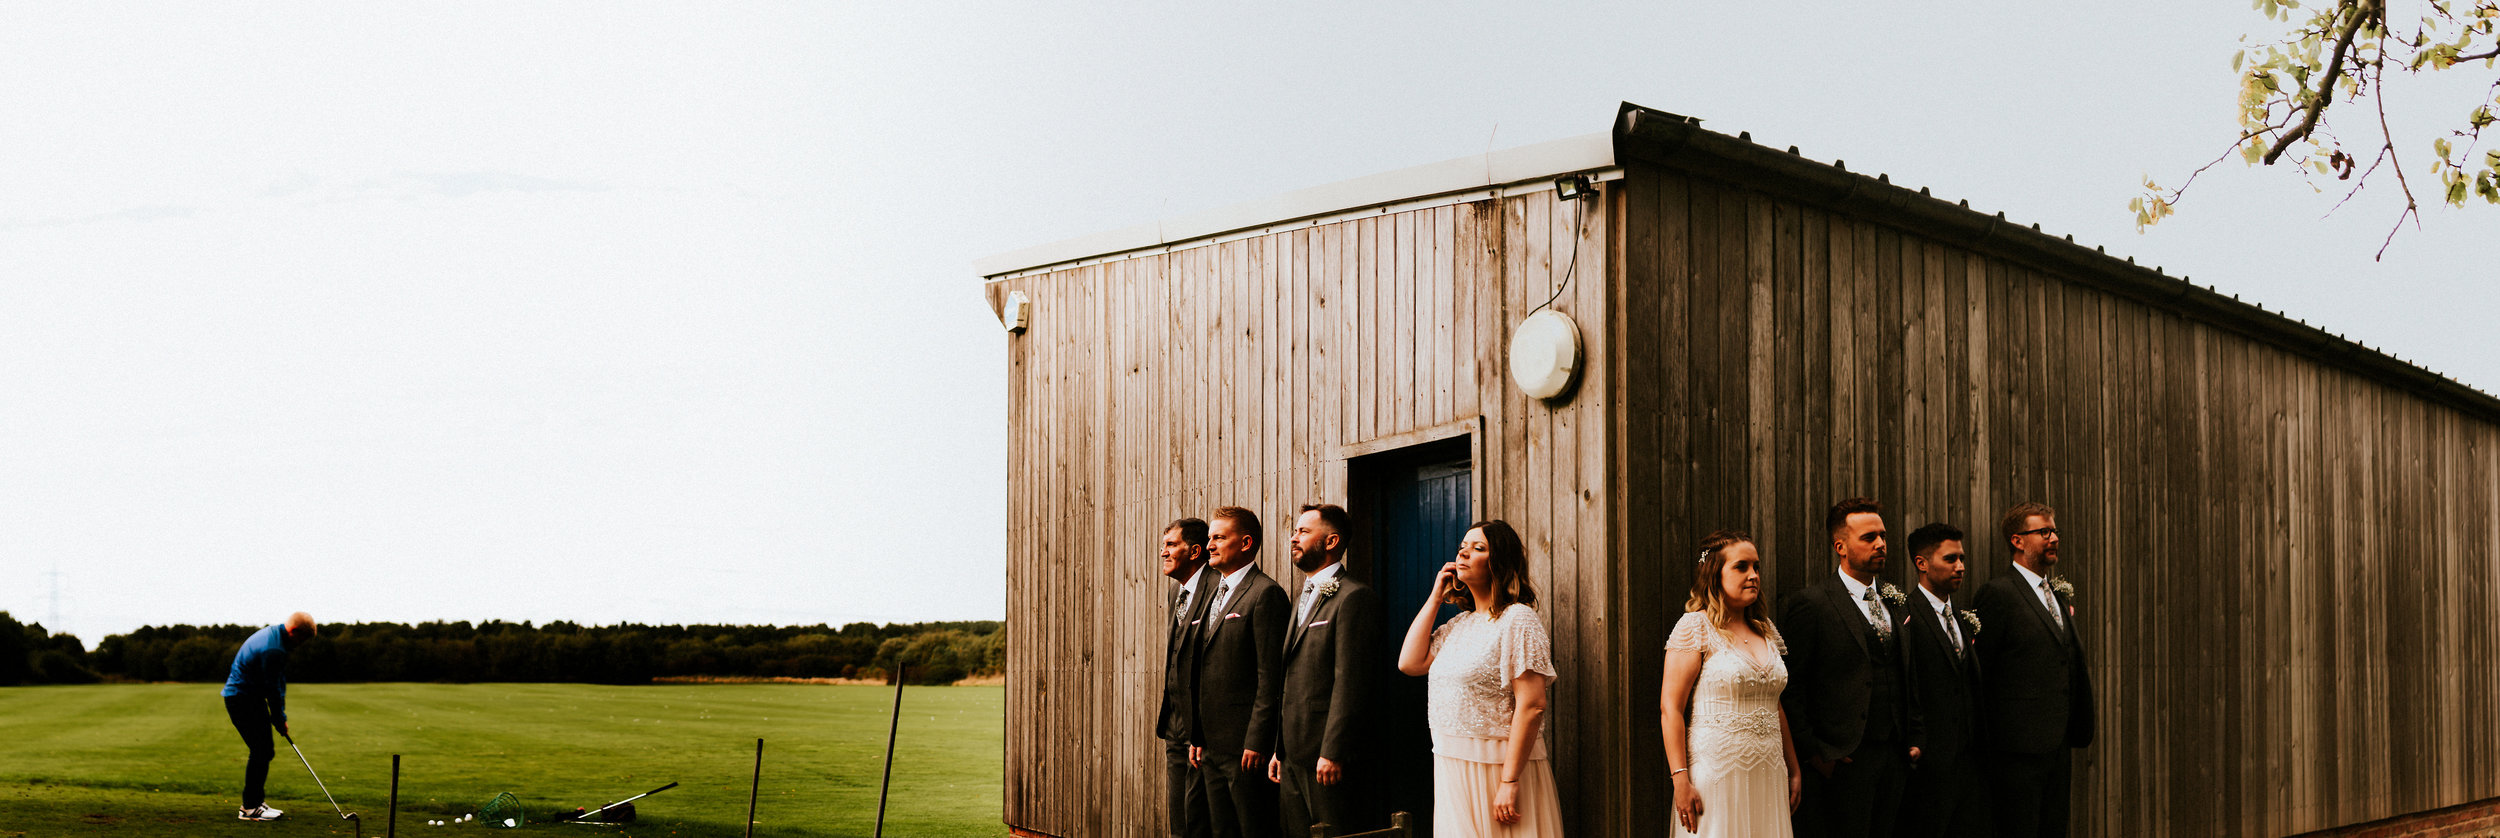 A tale of two brides in the beautiful wooden beamed barn venue of Sandburn Hall. Golf club portraits, Fairy lit first dances & a love without compare for Kaity & Charlotte's York wedding